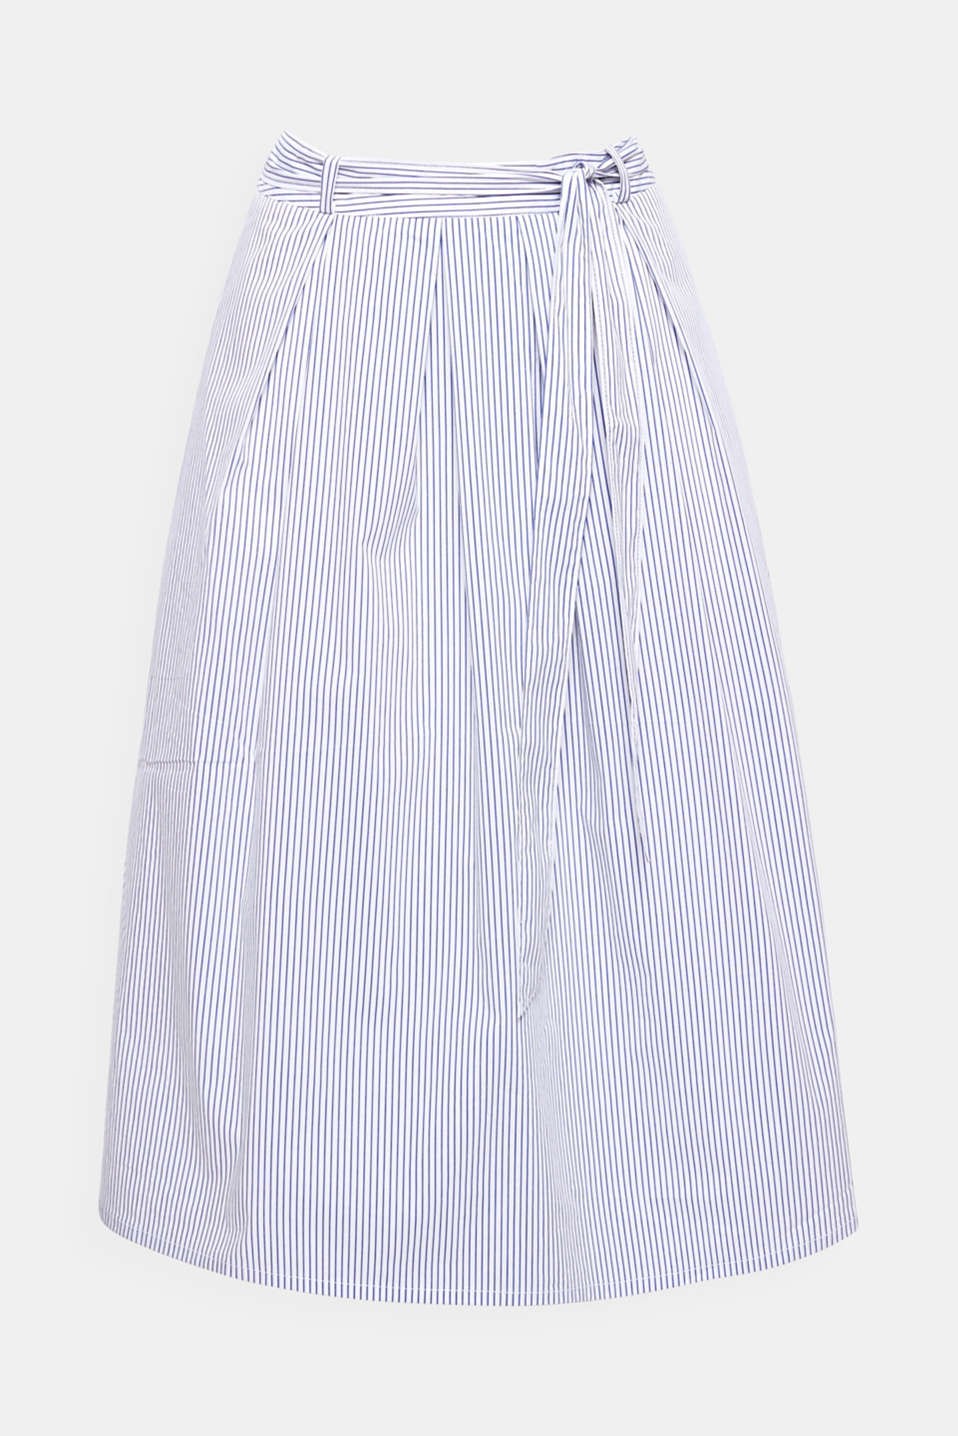 Nautical striped design in an on-trend midi length: This flared skirt with a tie-around belt exudes freshness and femininity!